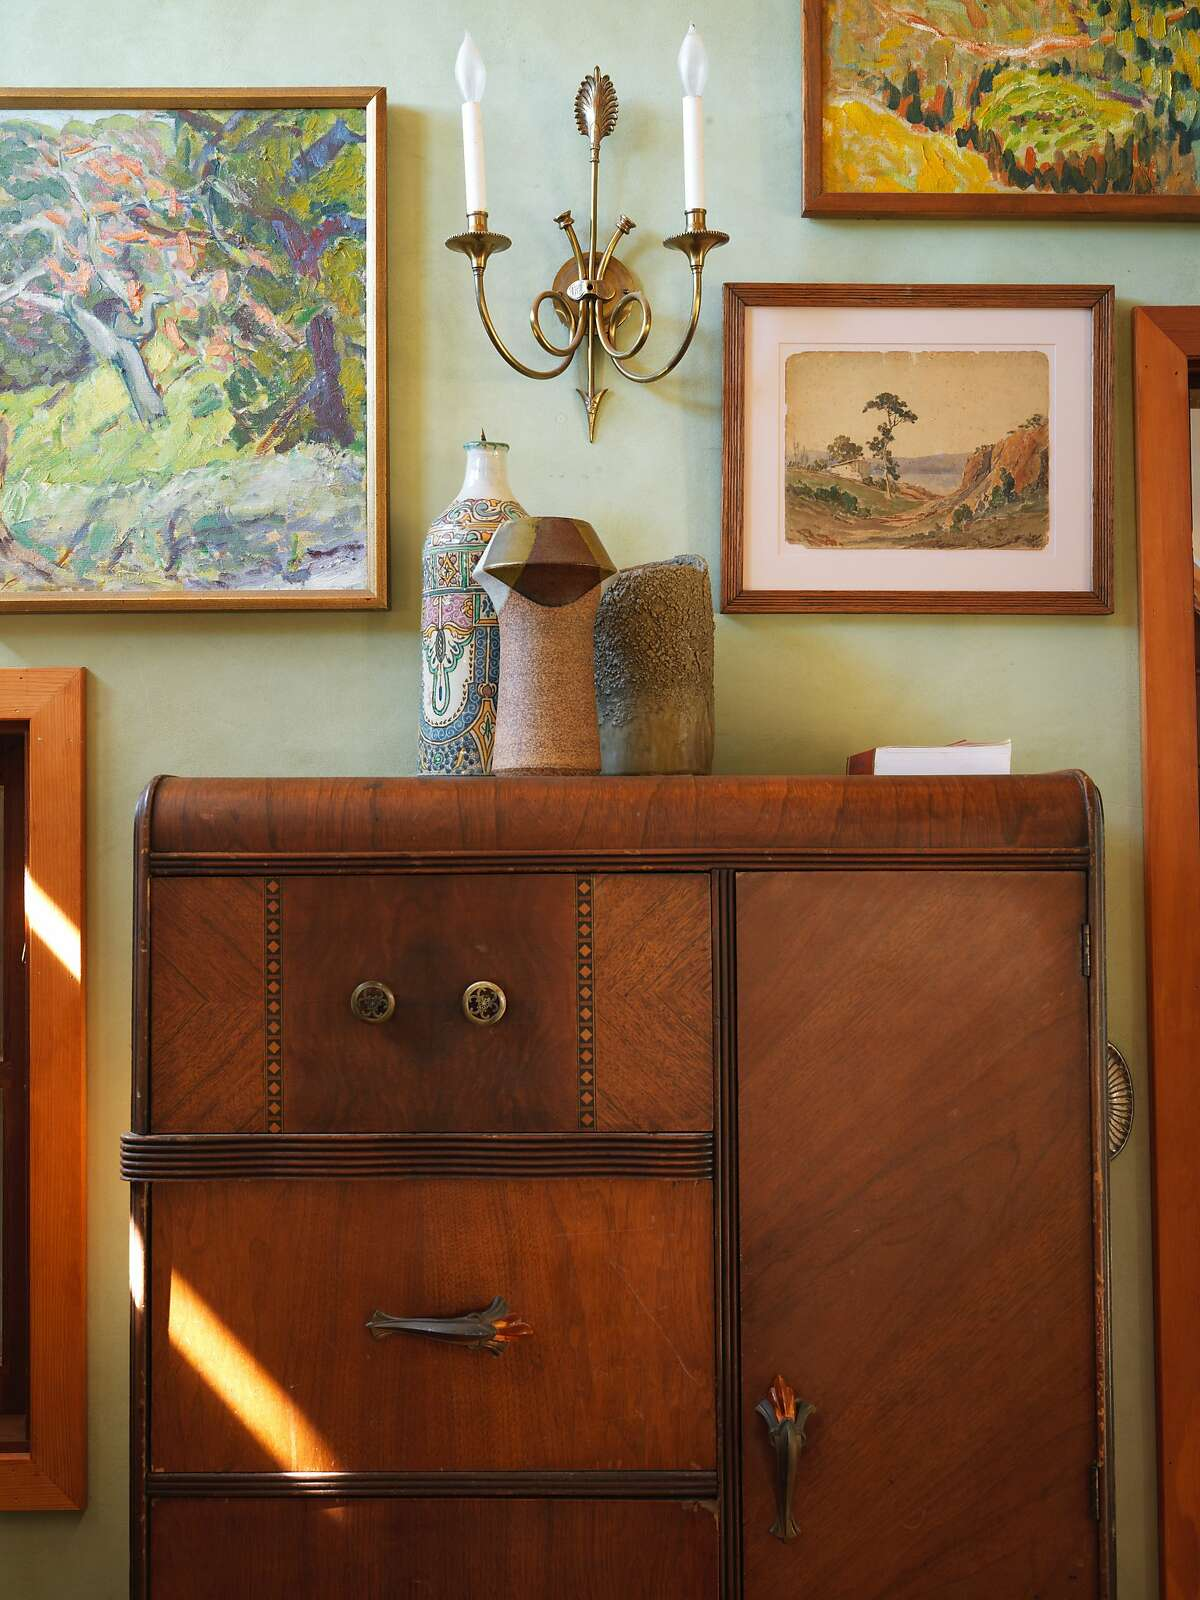 Like much of the other rooms in his house, the walls in Gaétan Caron's bedroom are covered in art hung salon-style. The art in this room share a landscape theme. Caron, co-owner of Lost Art Salon in San Francisco, lives off the grid in a custom house in the rolling hills west of Ukiah.